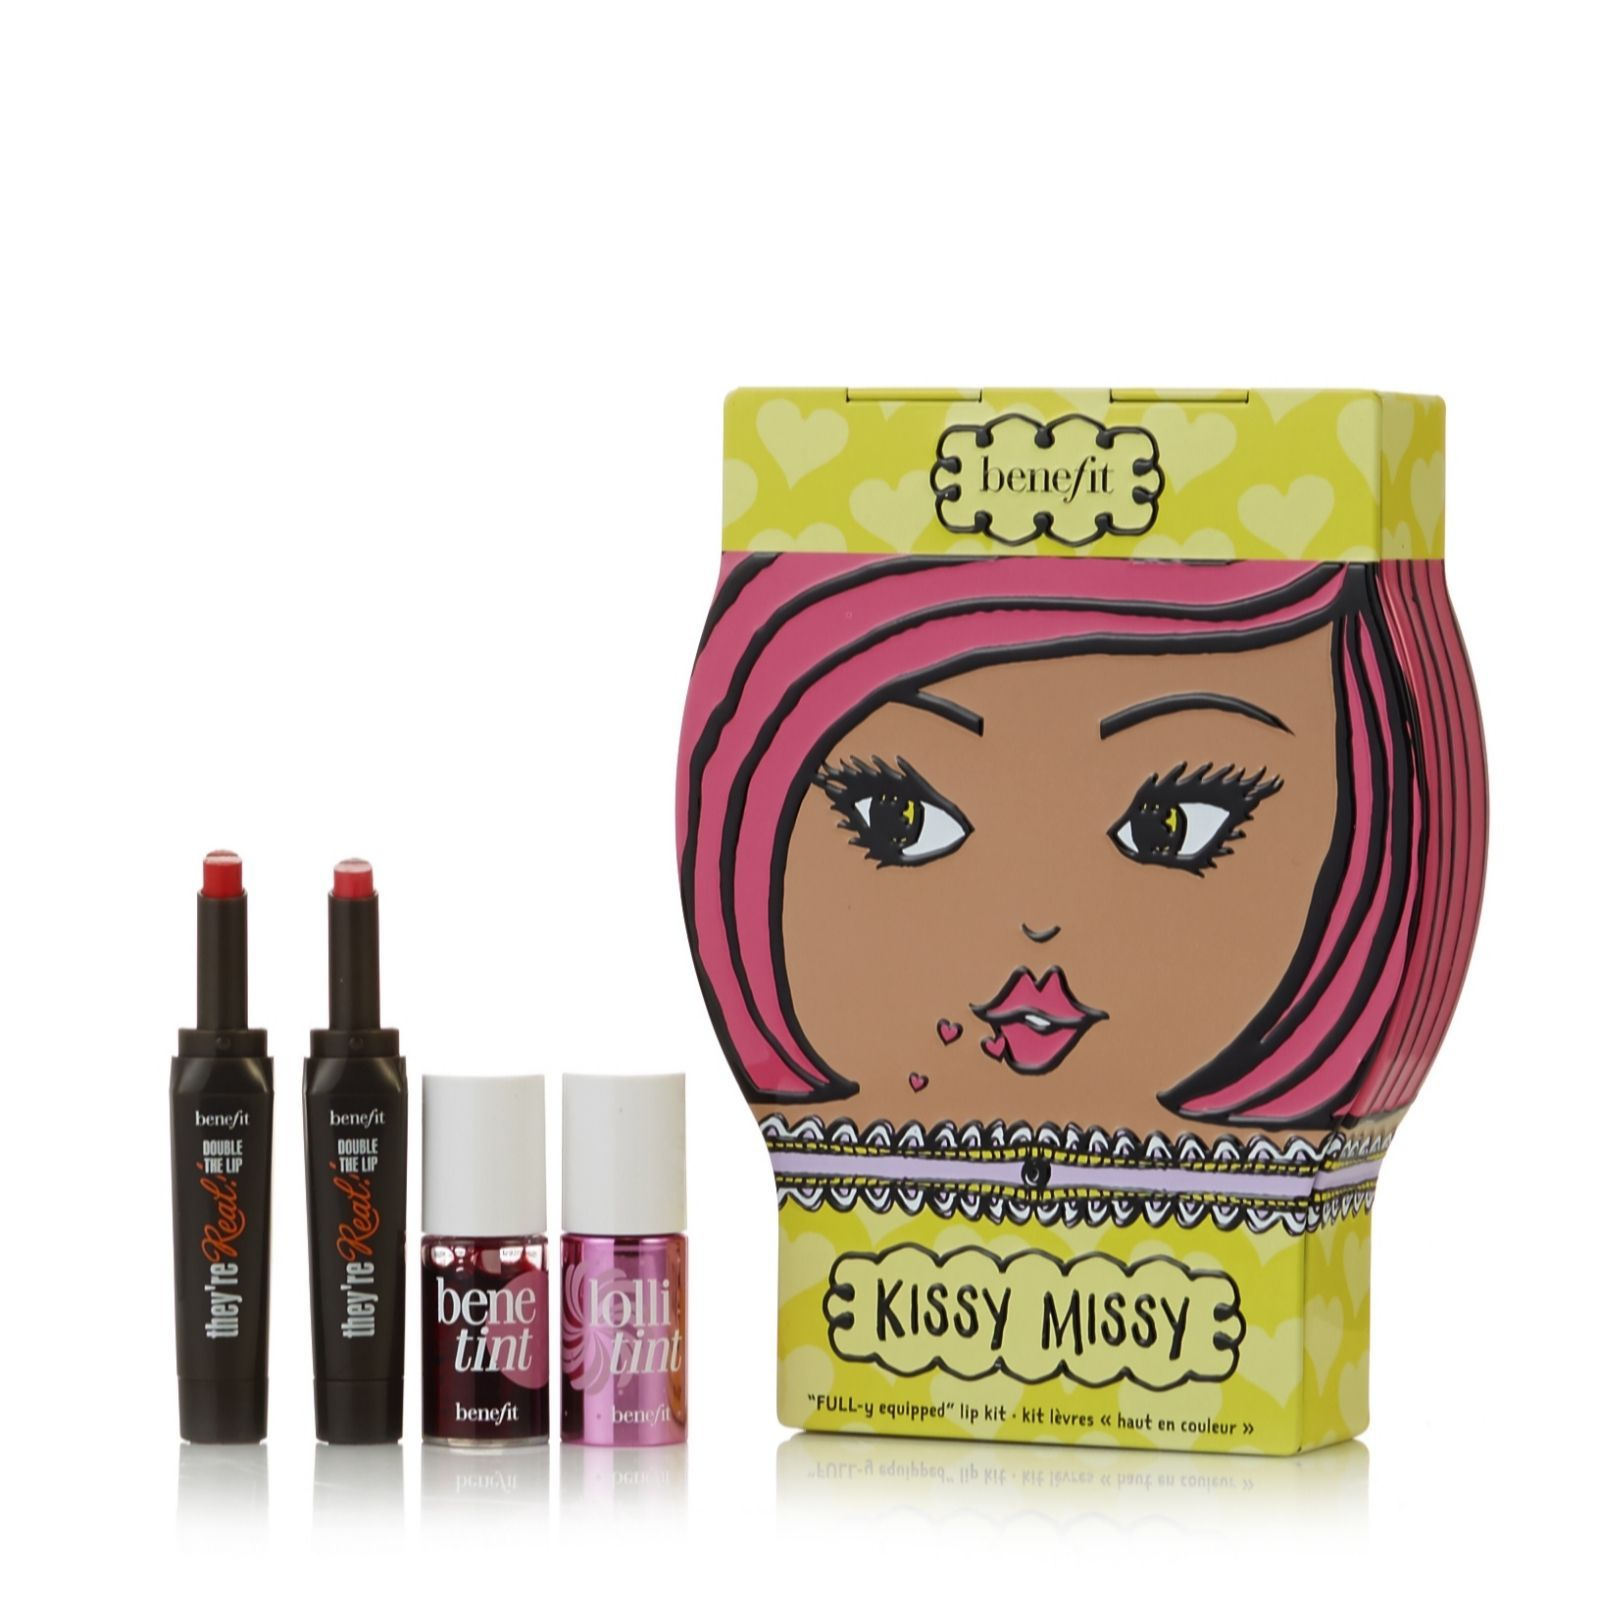 228772 Benefit 4 Piece Kissy Missy Makeup Collection QVC